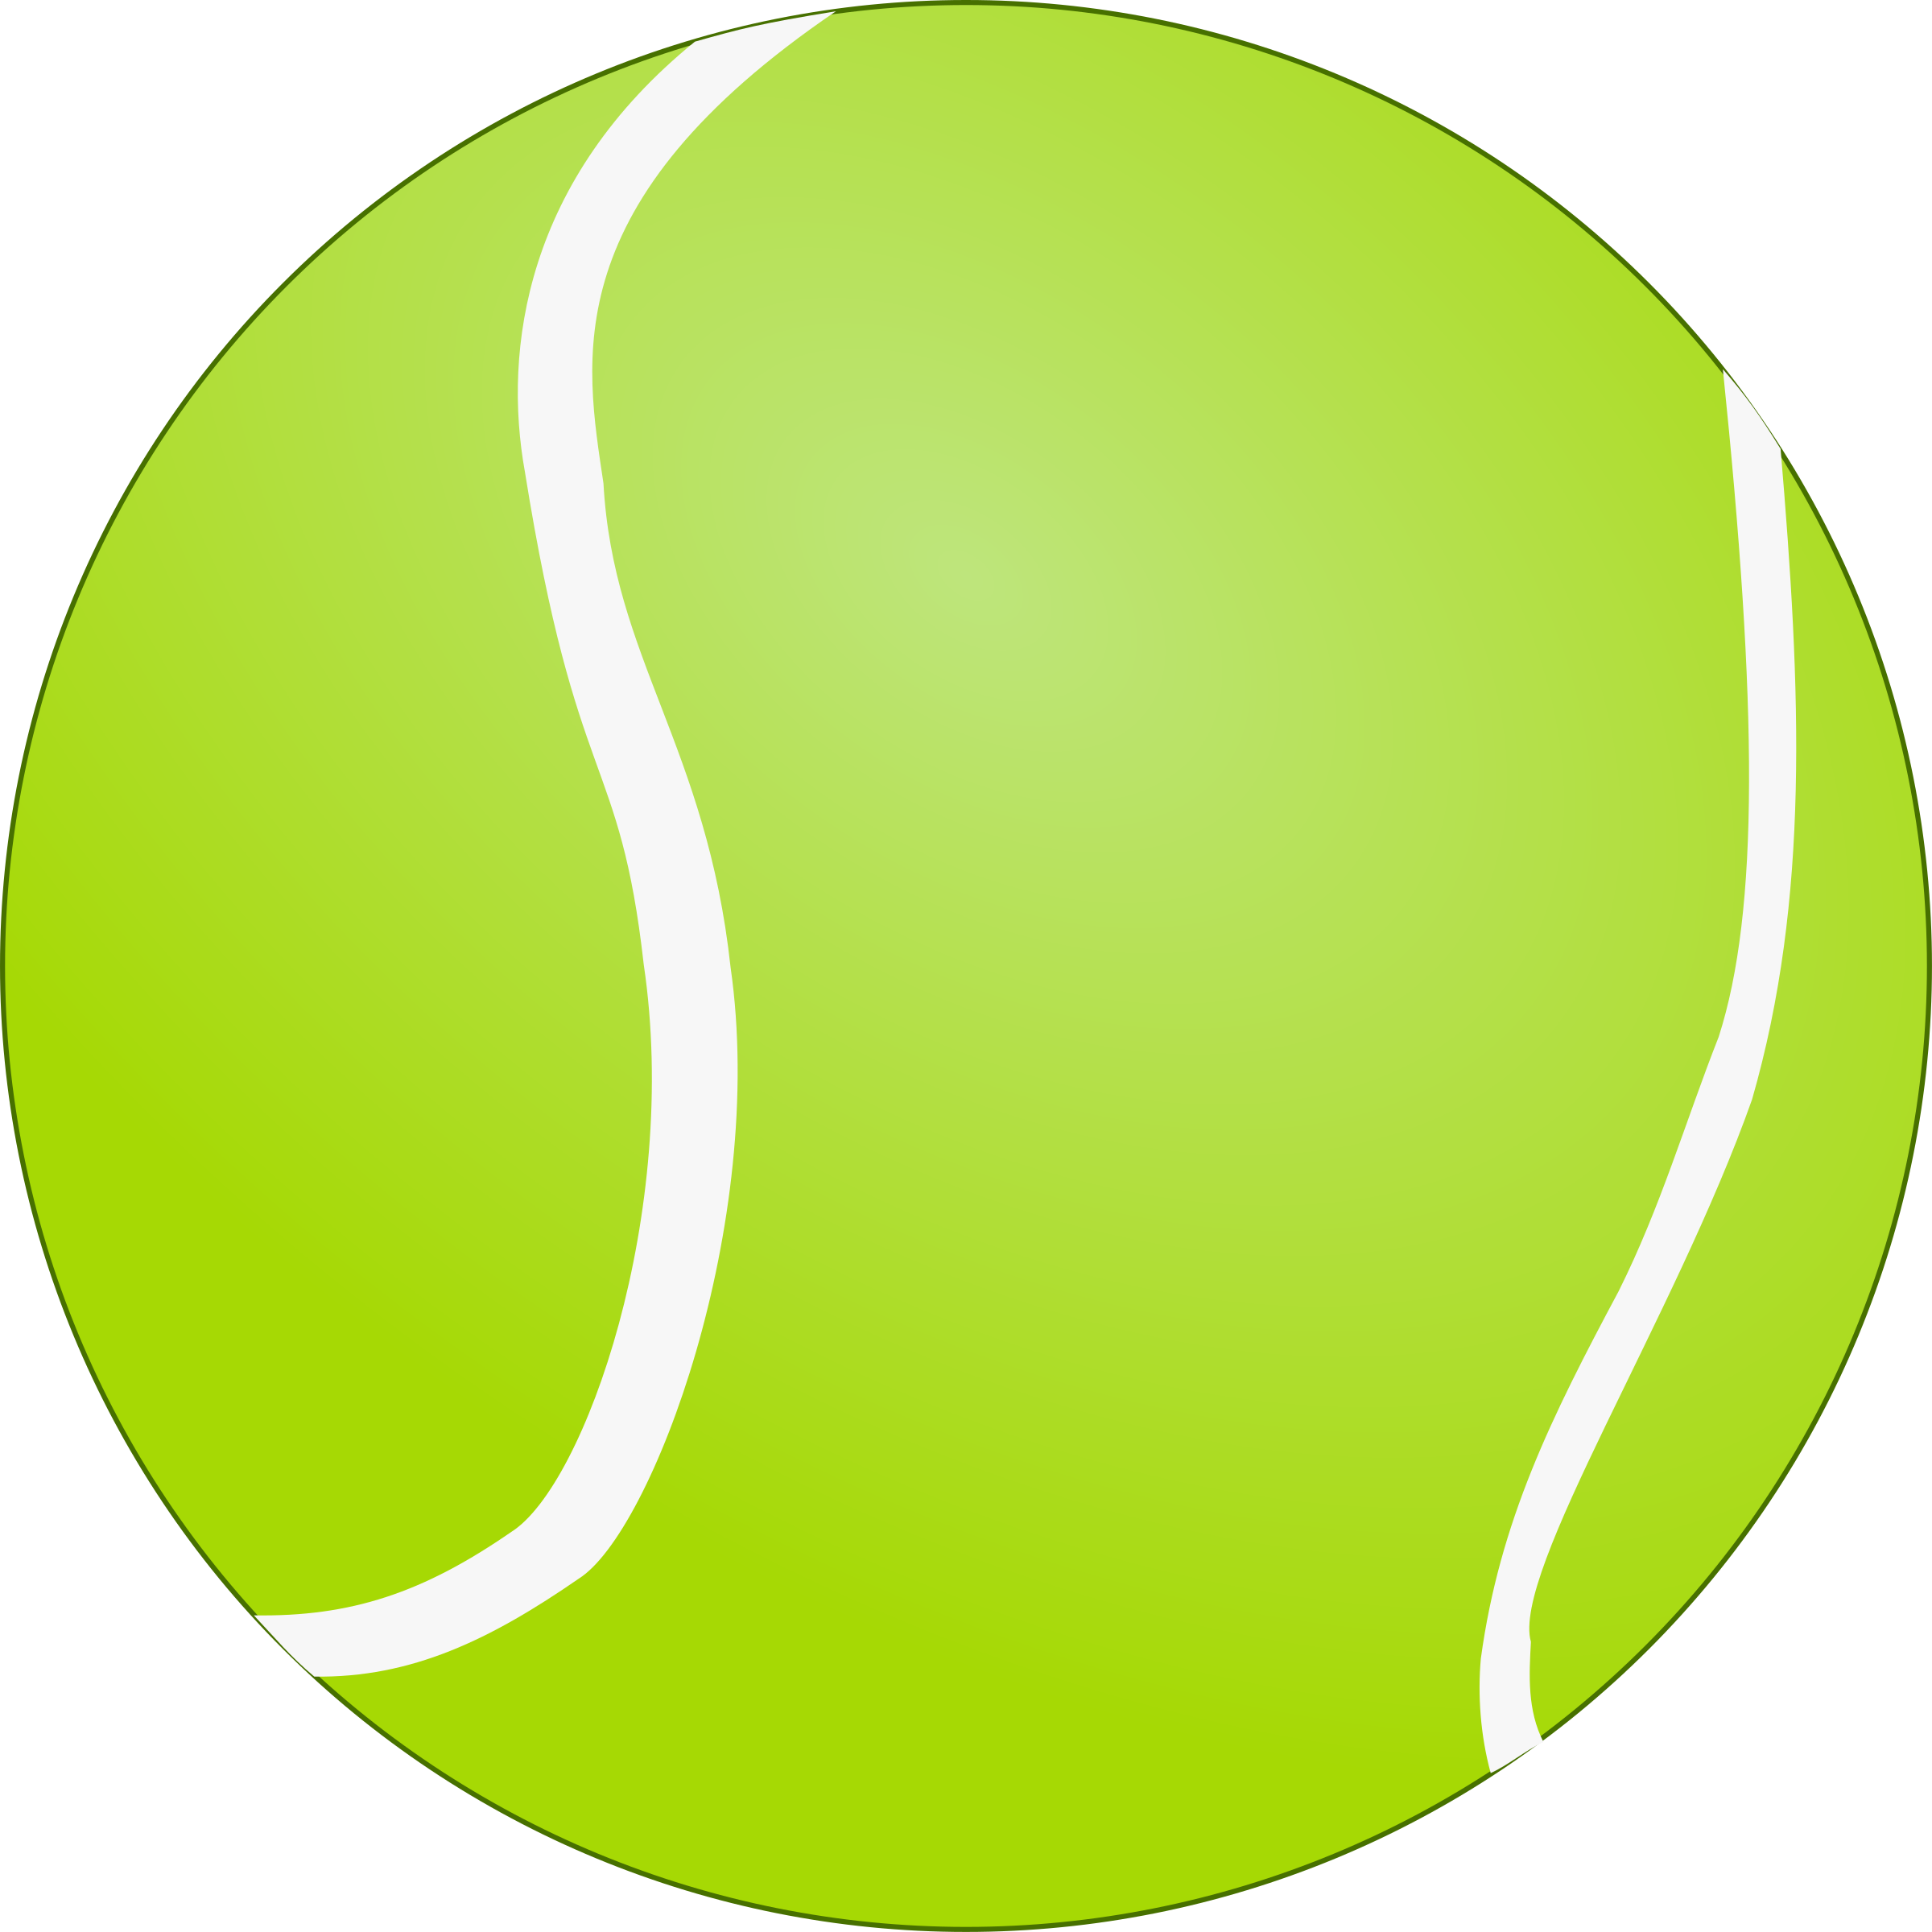 Tennis Ball - Bola de Tenis by lunik